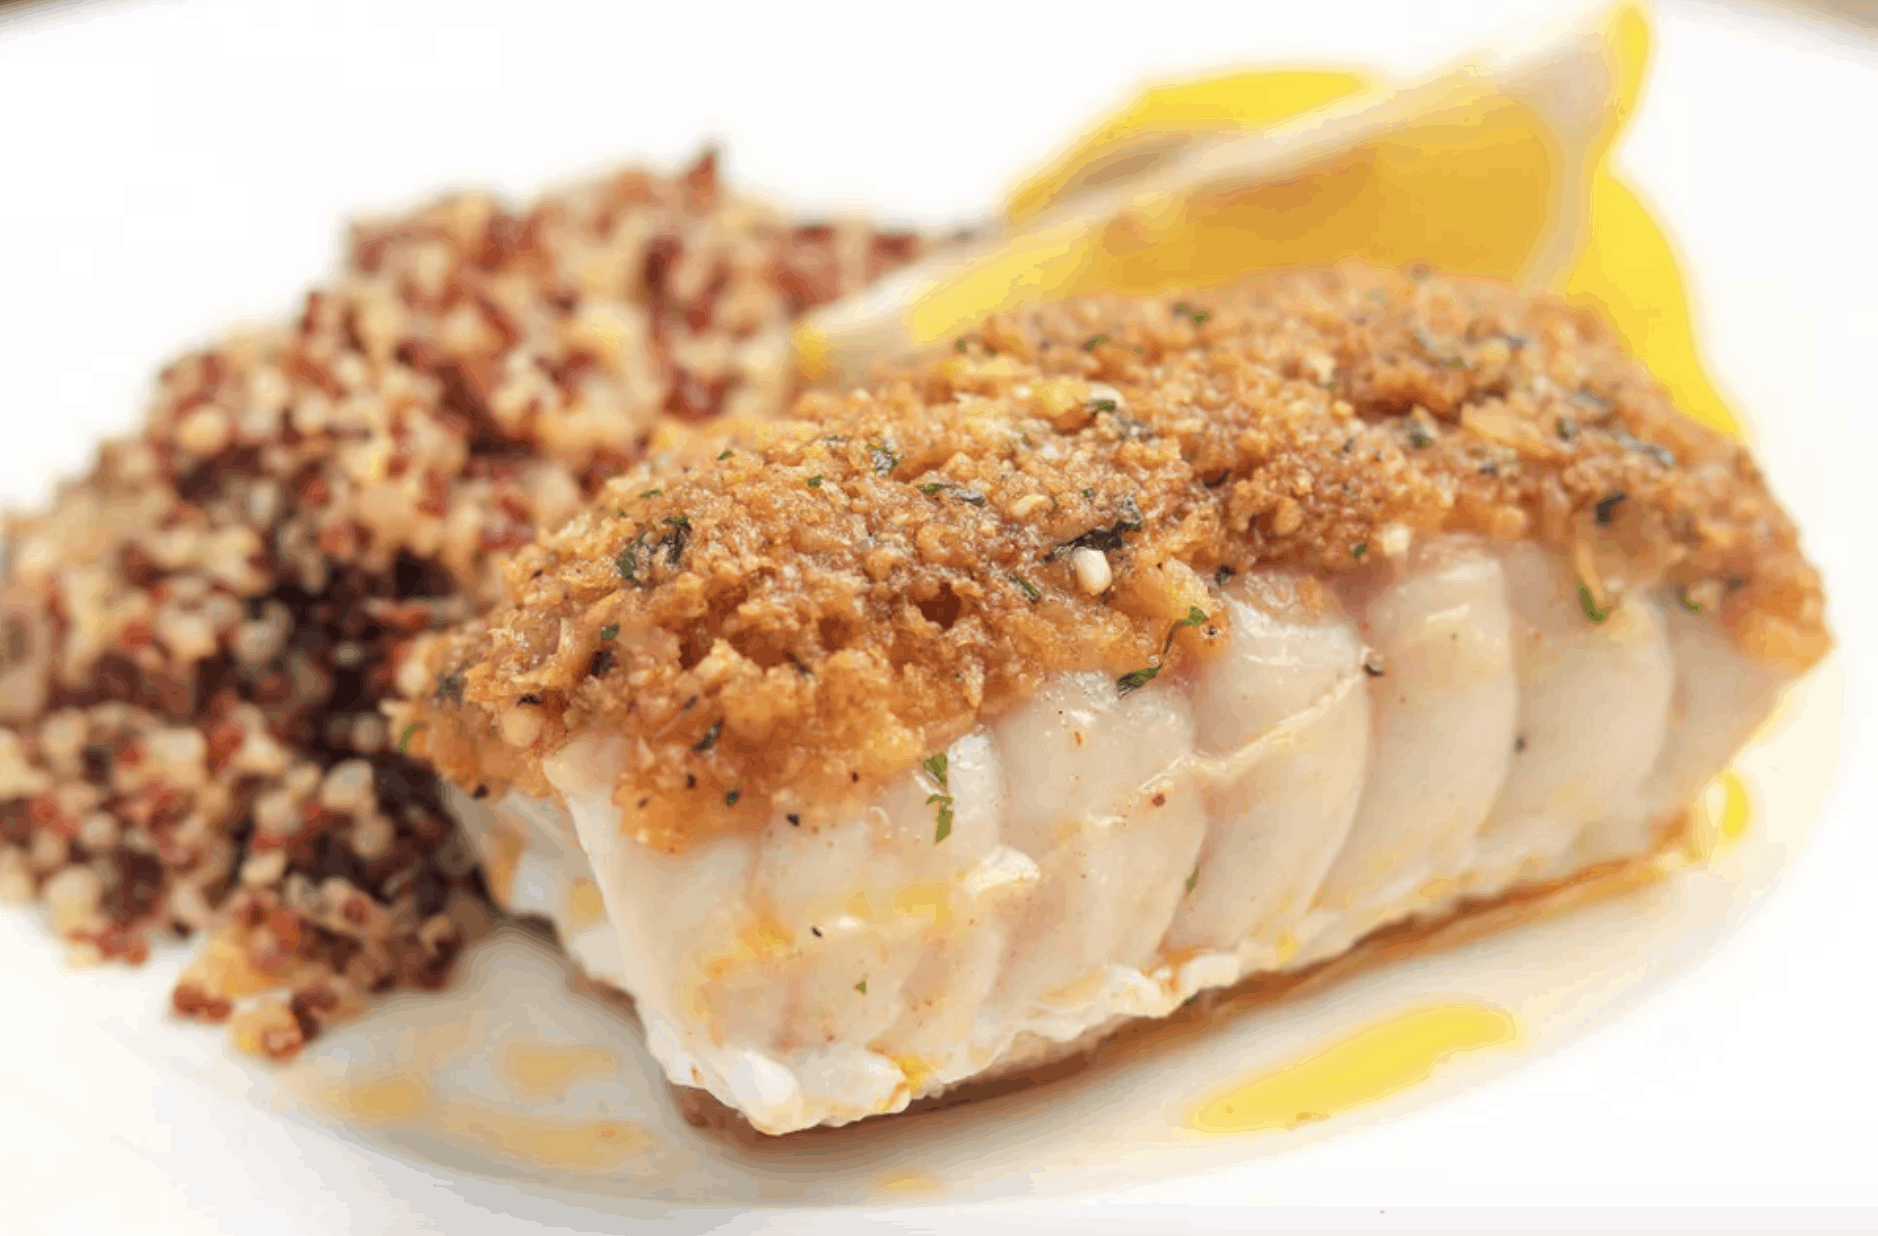 Baked Snapper With Garlic and Herbs